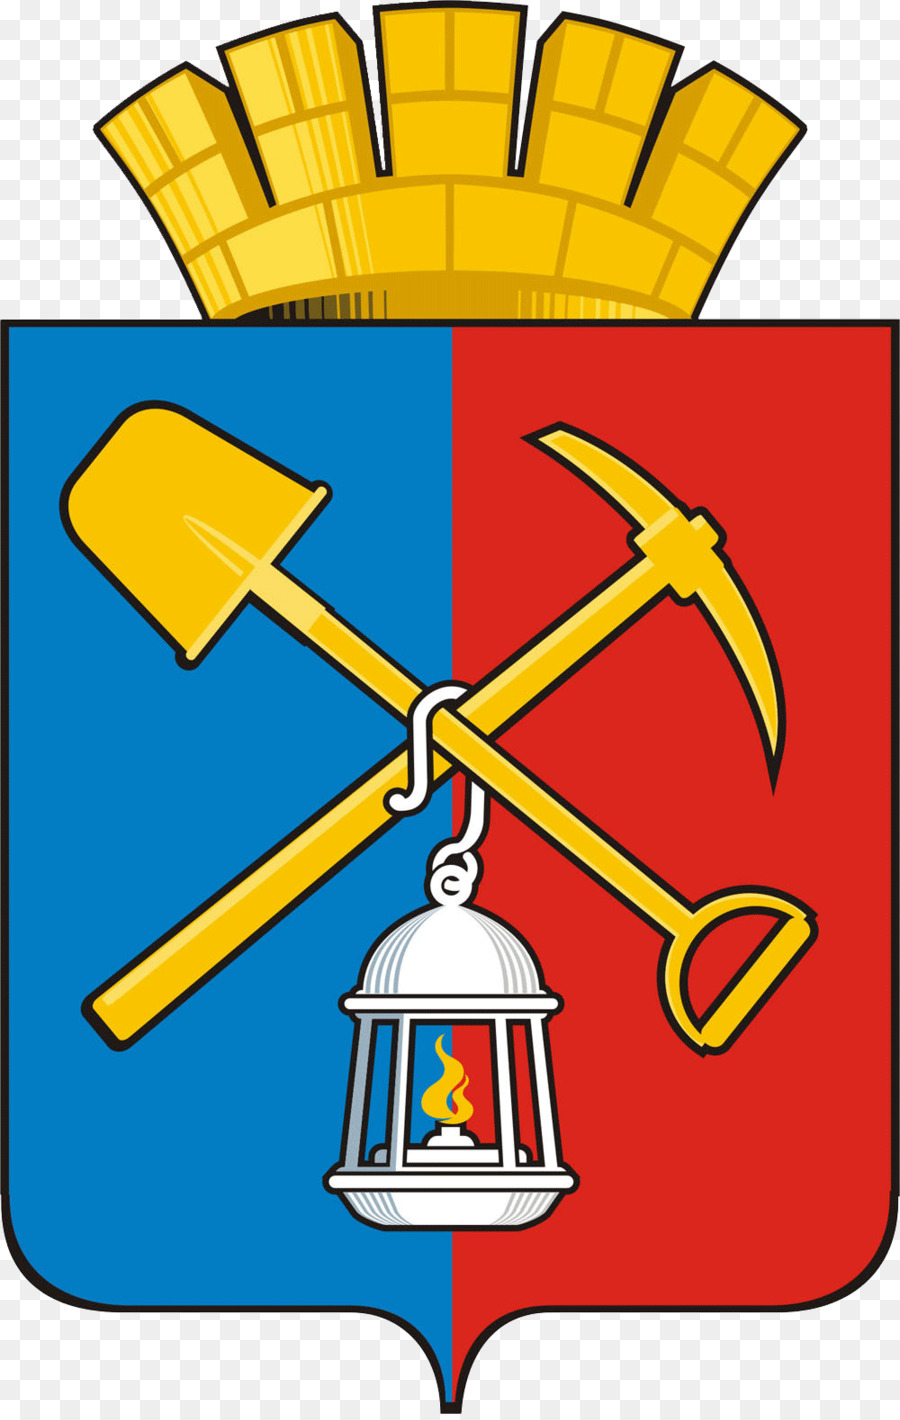 Coat of arms of the Kemerovo region: beauty and symbolism 48